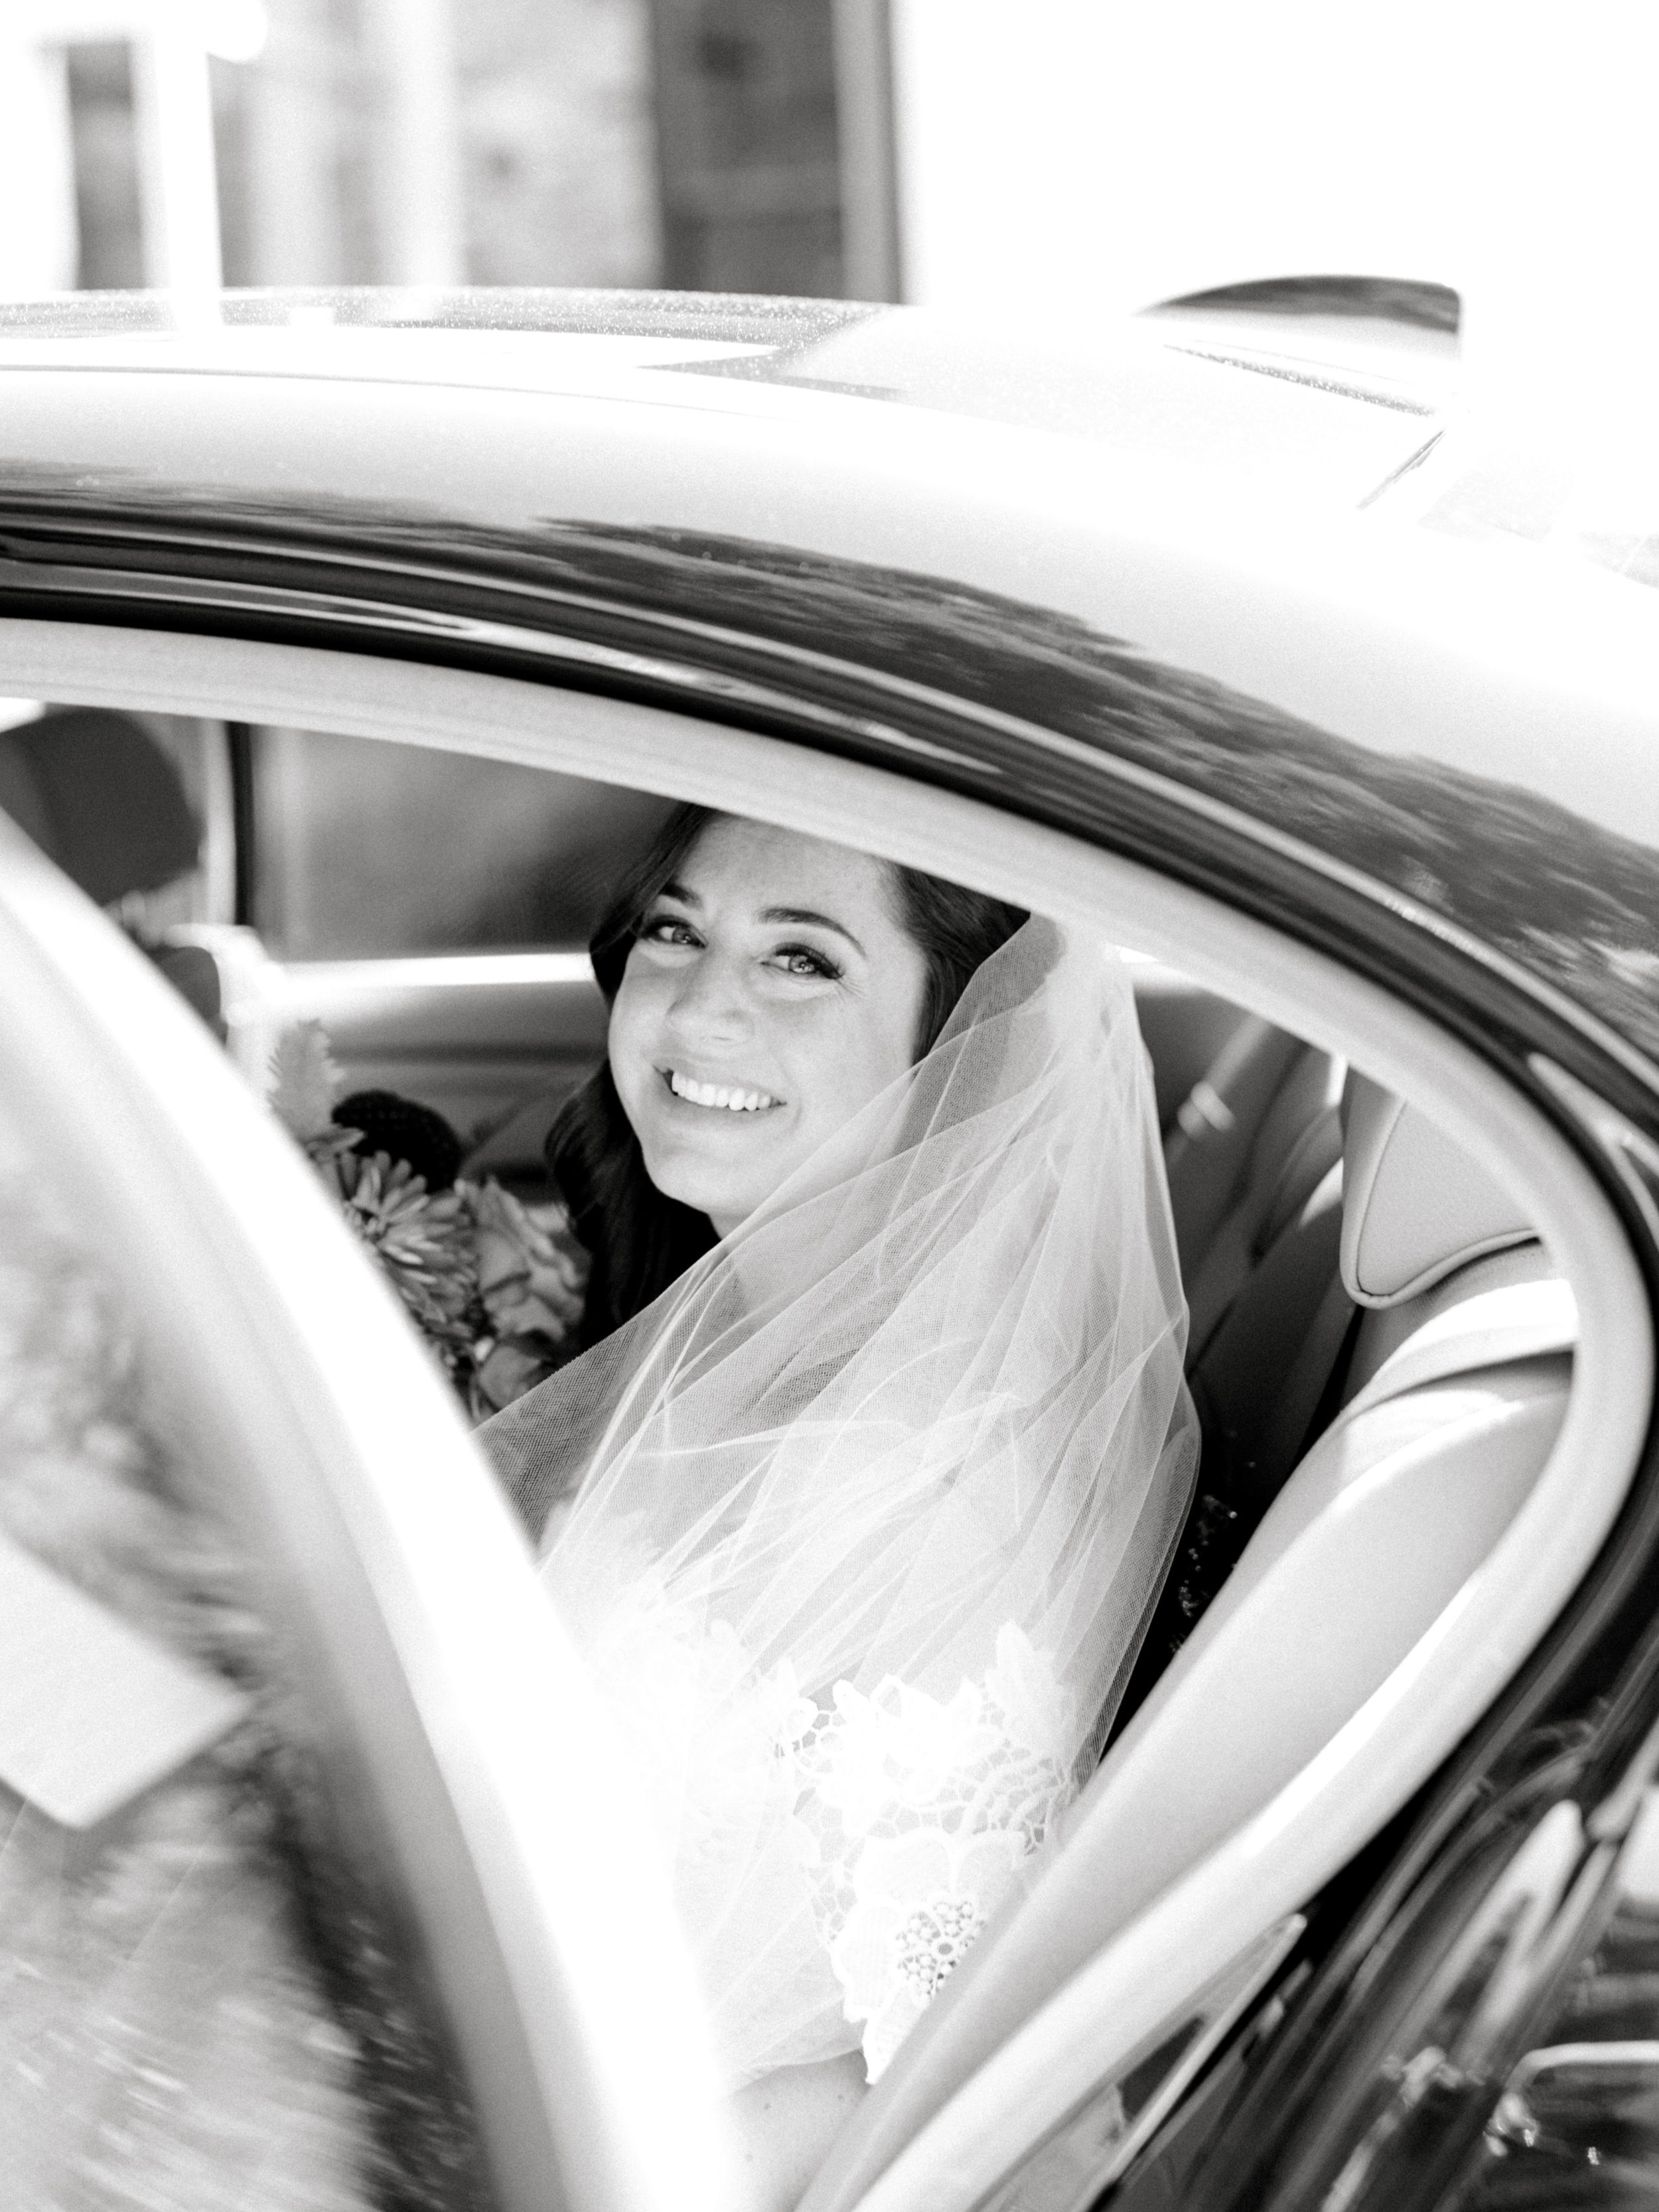 Lindsey is all smiles as she gets in the car ready to head off to her modern summer wedding at Hotel du Village.